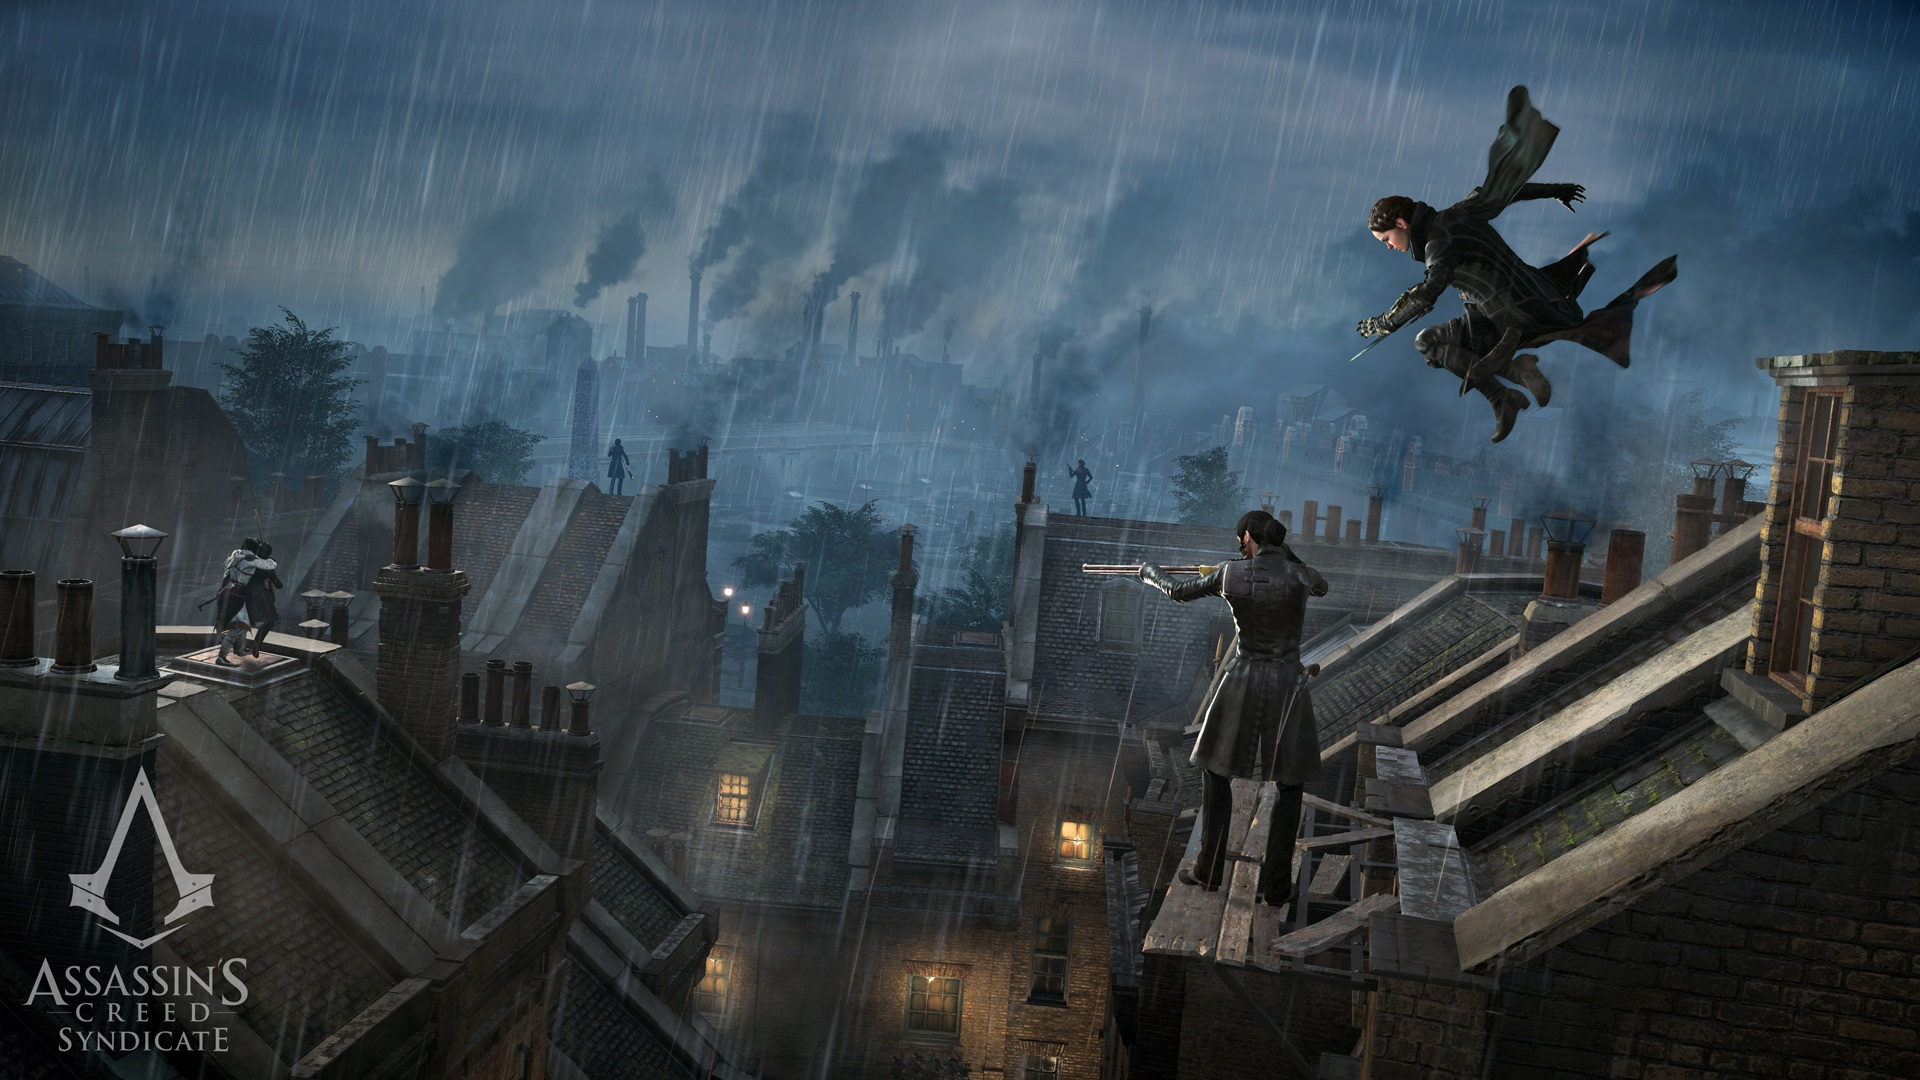 Assassin S Creed Syndicate Patch 1 3 Out For Ps4 And Xbox One